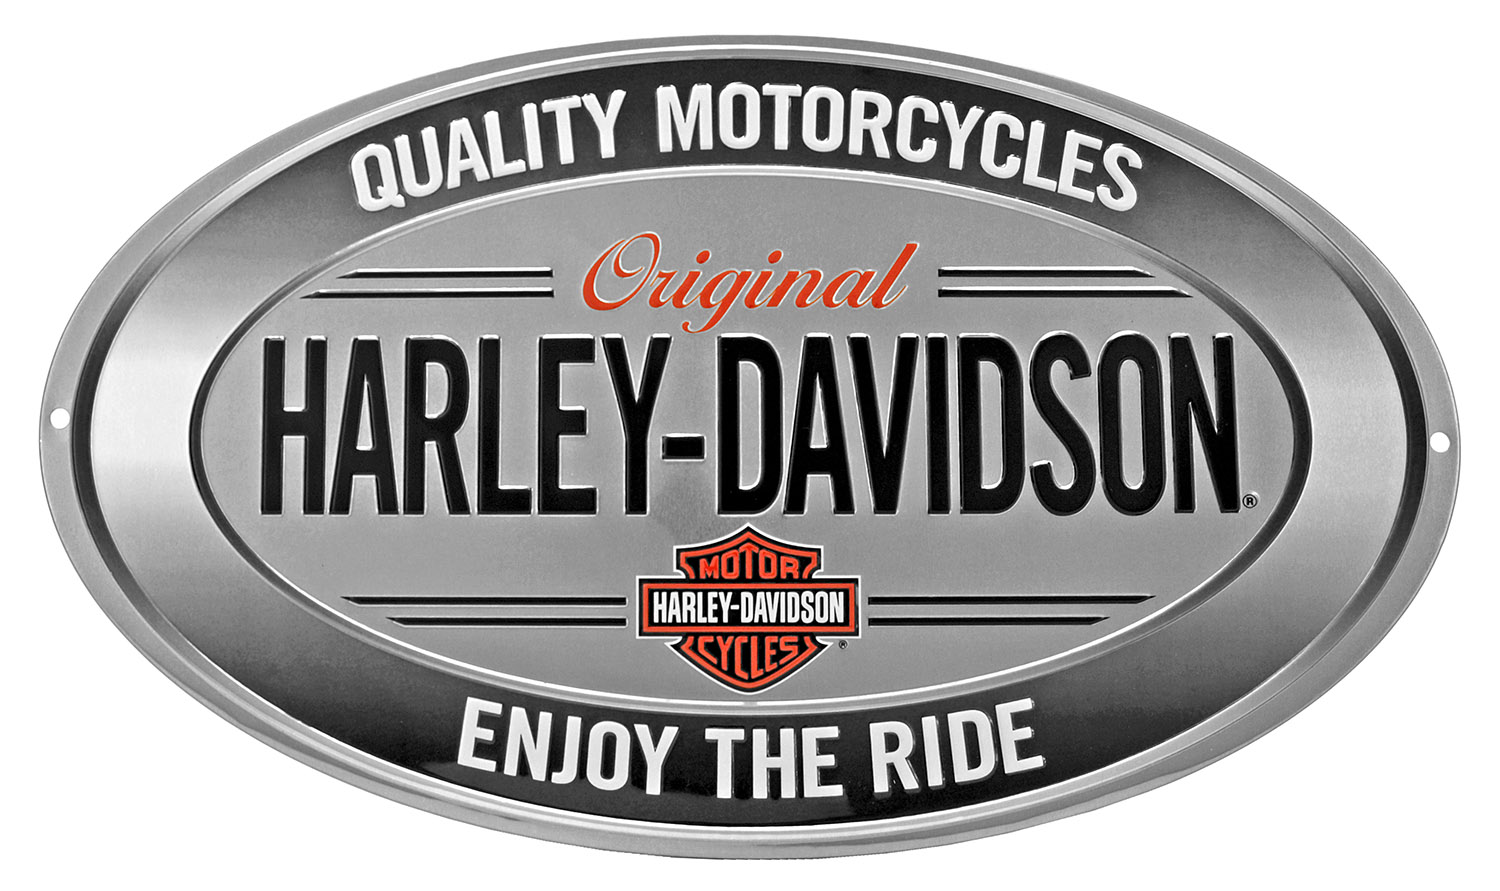 Harley Davidson Enjoy the Ride Tin Sign